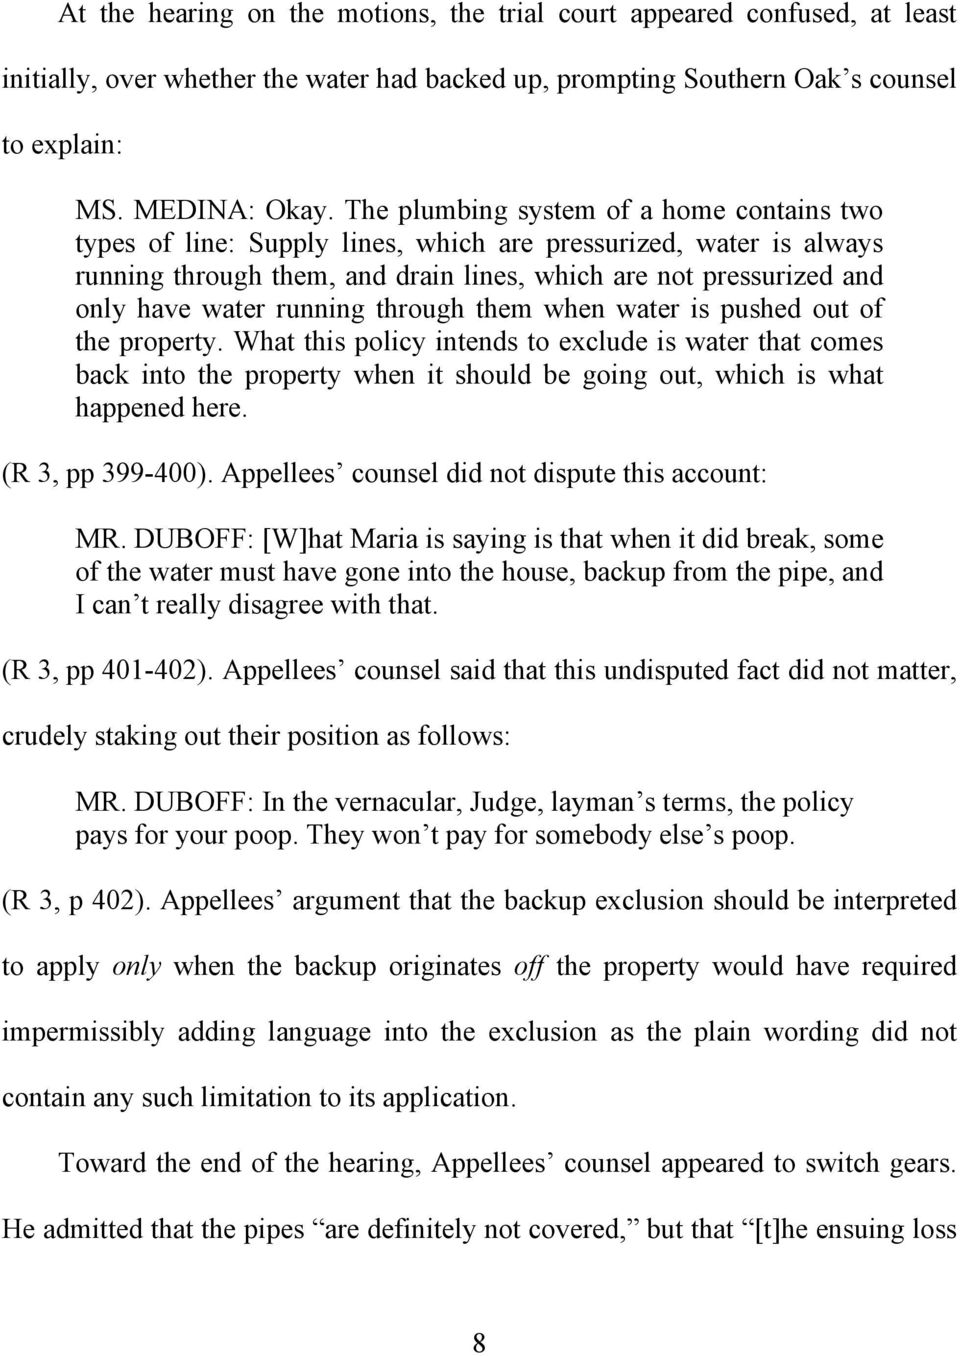 running through them when water is pushed out of the property. What this policy intends to exclude is water that comes back into the property when it should be going out, which is what happened here.